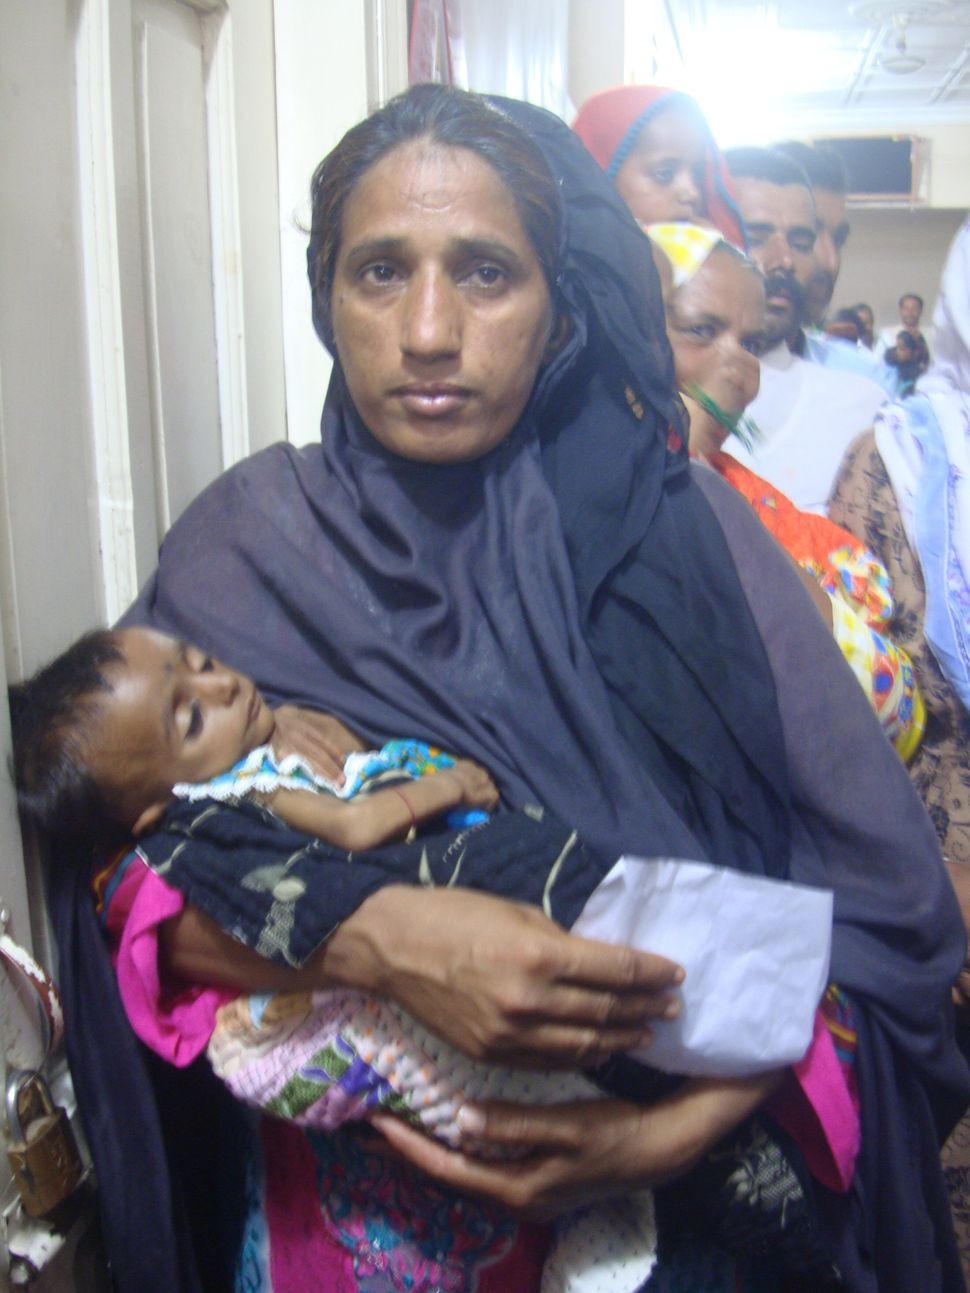 <i>A woman carries her malnourished baby while waiting for her turn to see HIV experts at the Chandka Medical Hospital, Larka